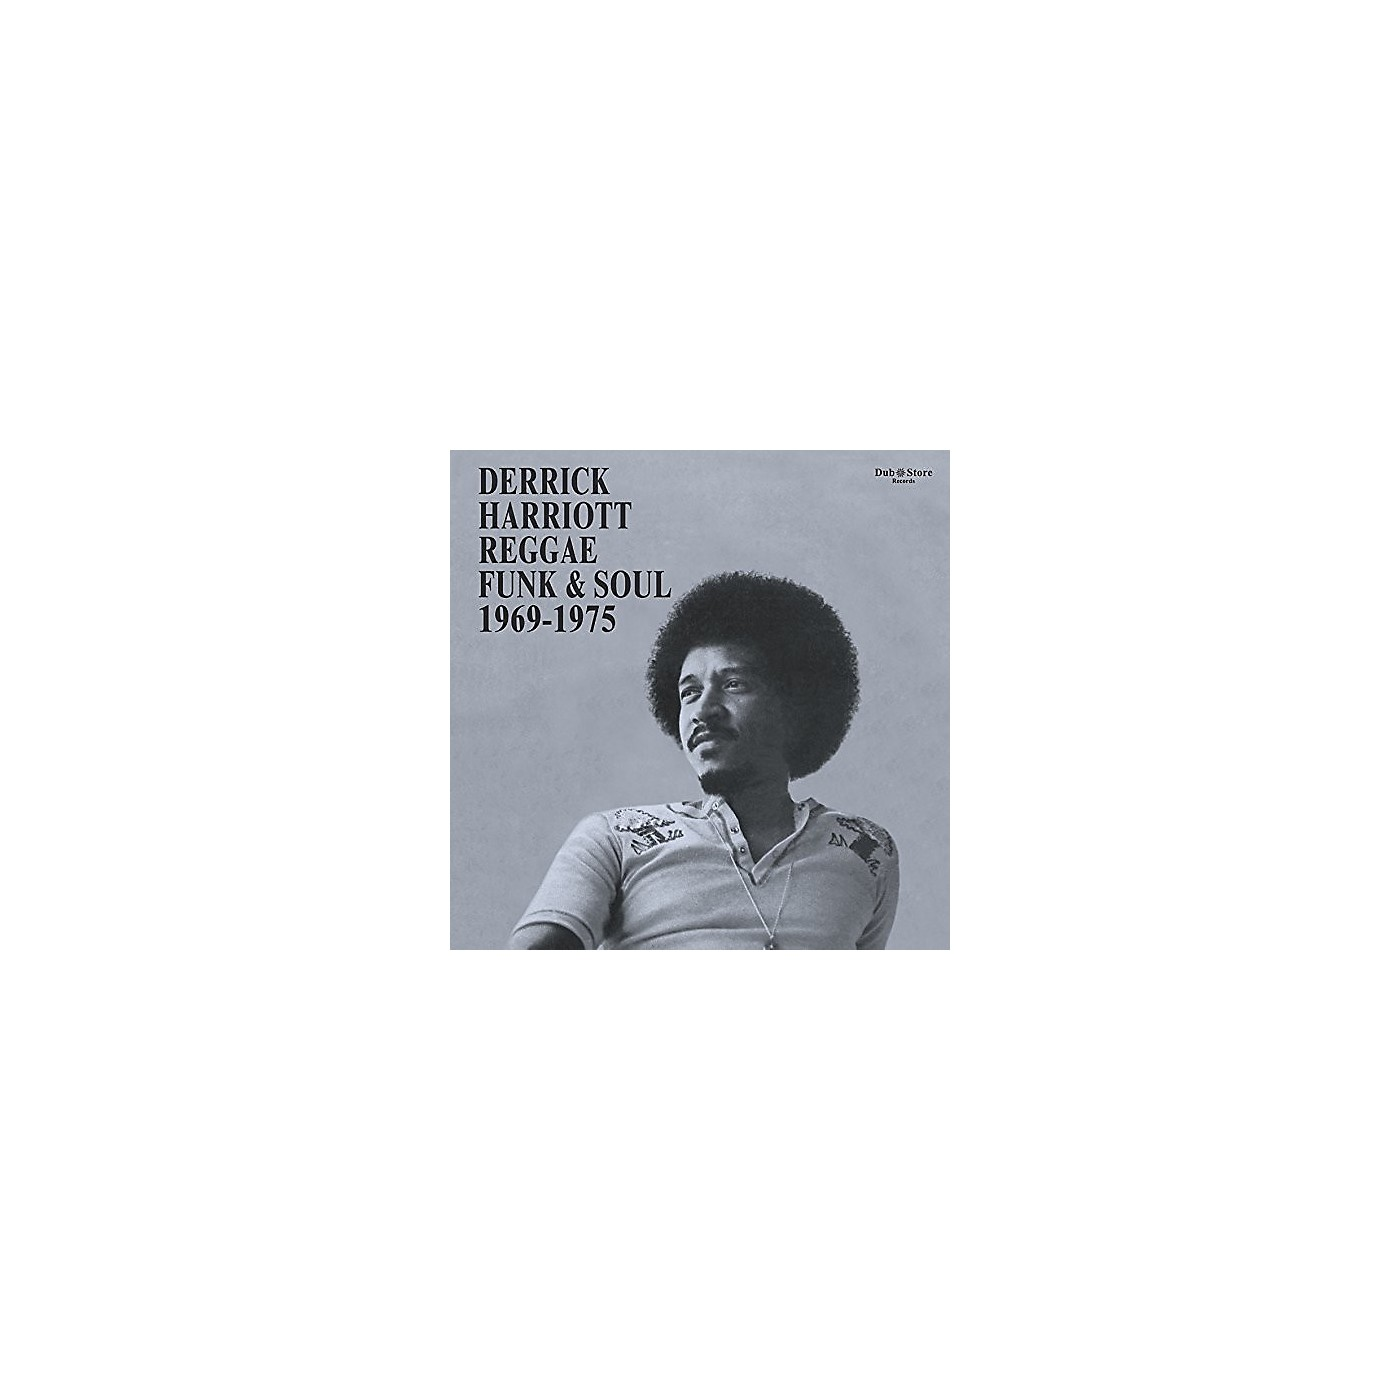 Alliance Various Artists - Derrick Harriott Reggae, Funk And Soul 1969-1975 thumbnail